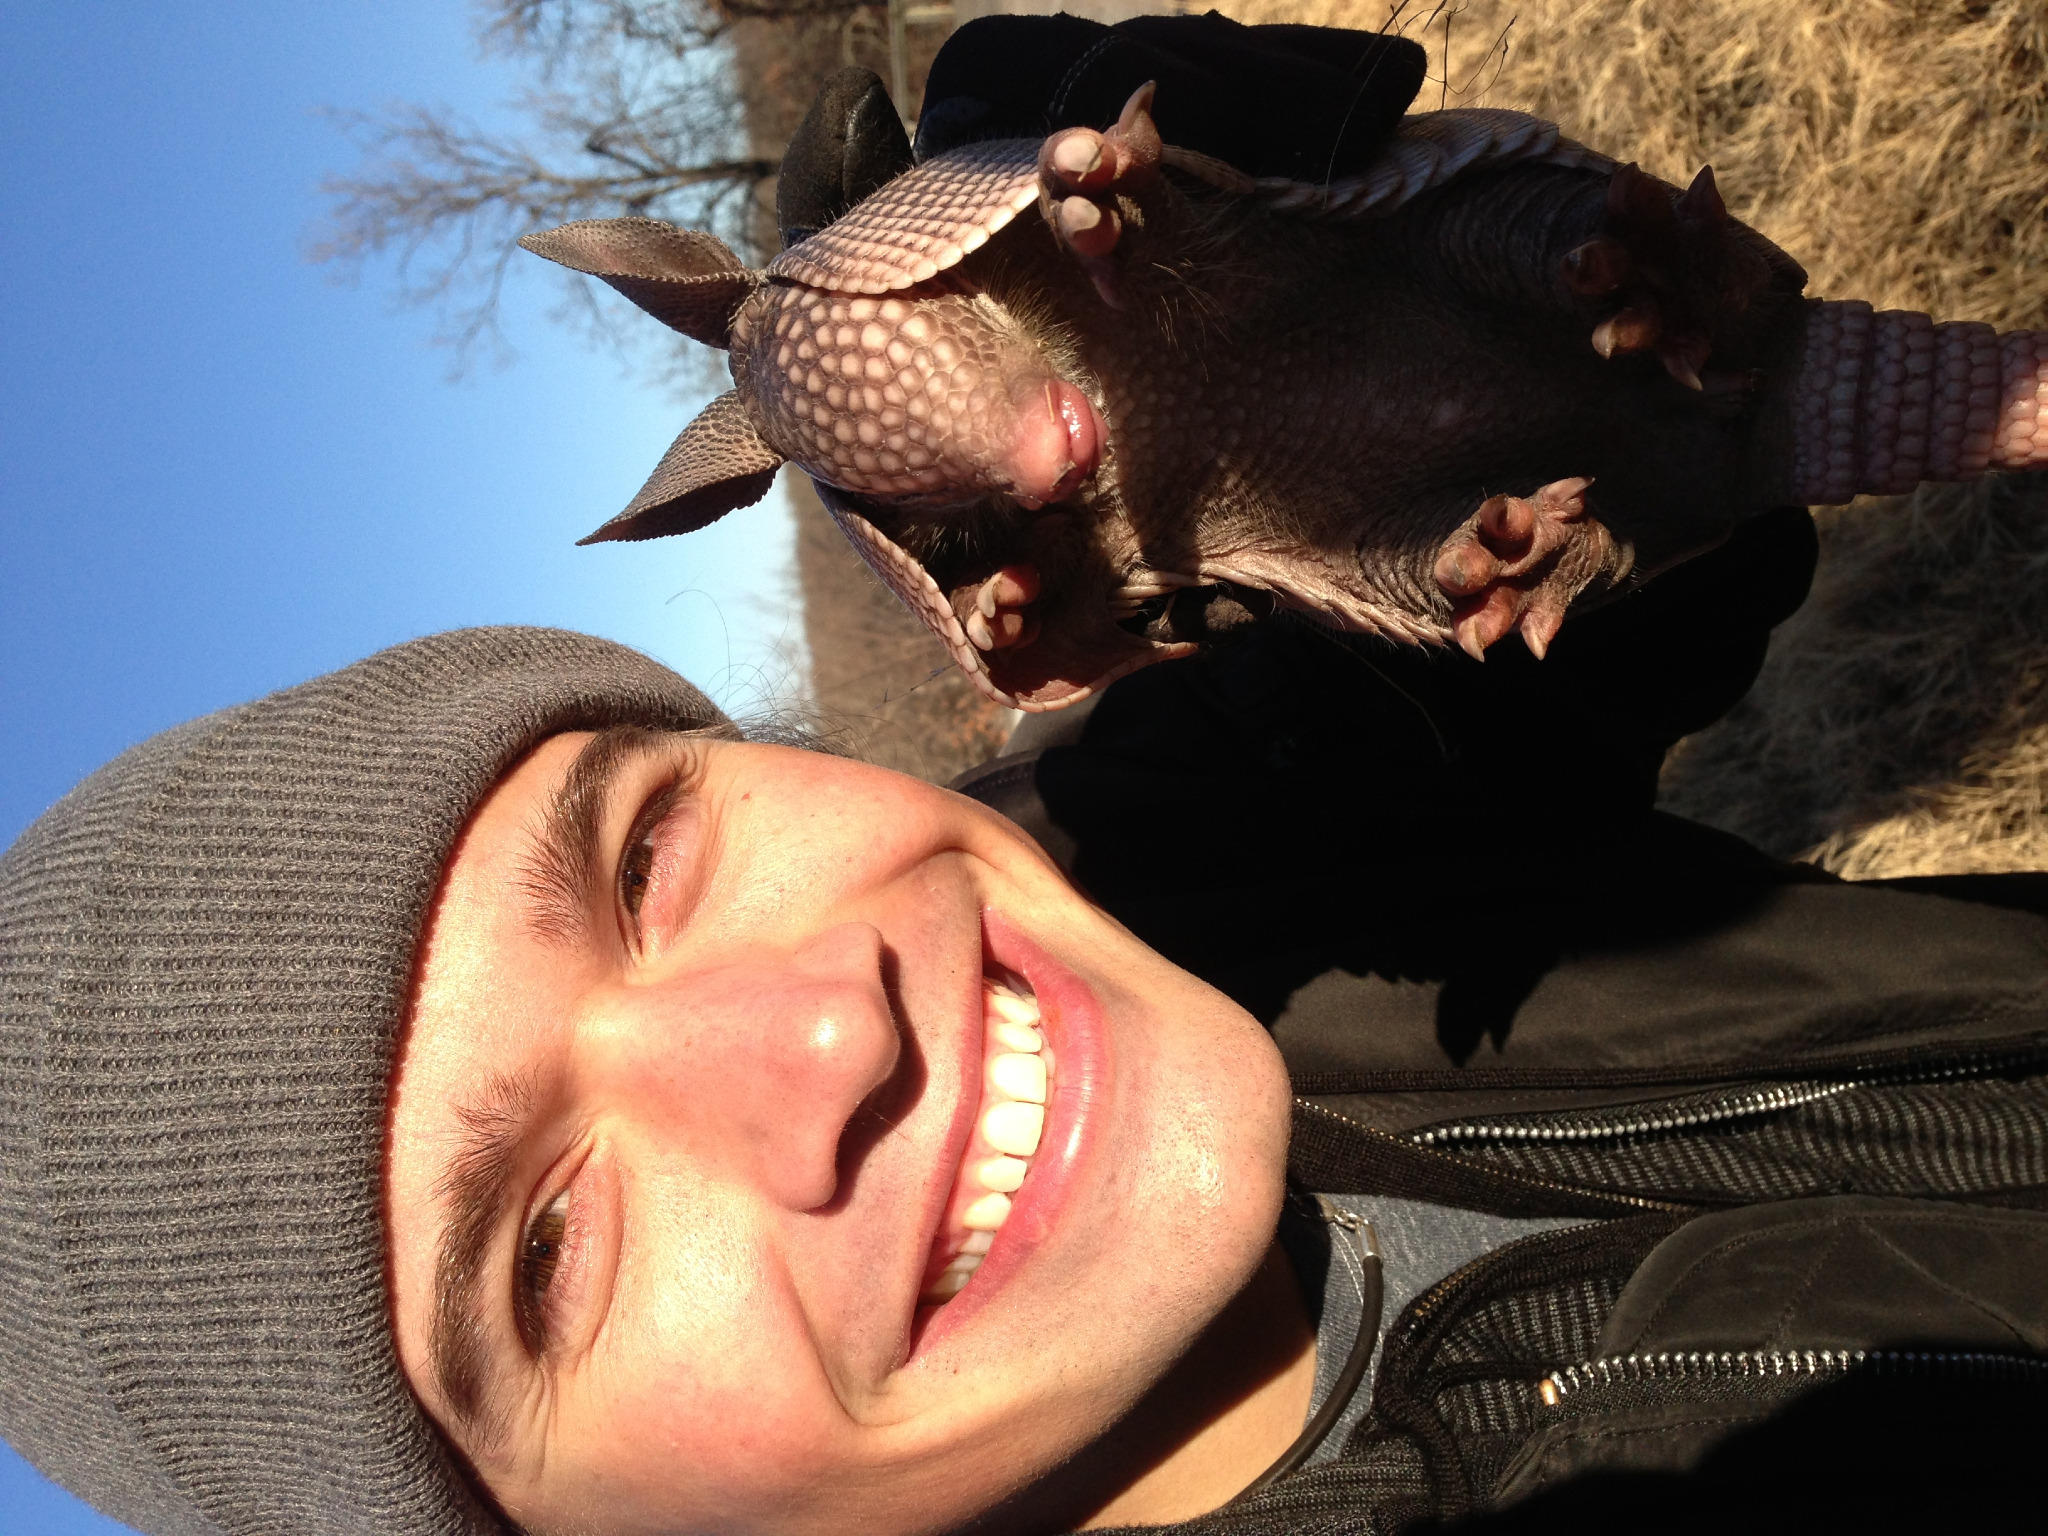 """""""@hansonmusic: I picked up a baby armadillo the other day, and is was awesome, and so cute. http://t.co/F0nDcerr"""" its the holiday armadillo!"""